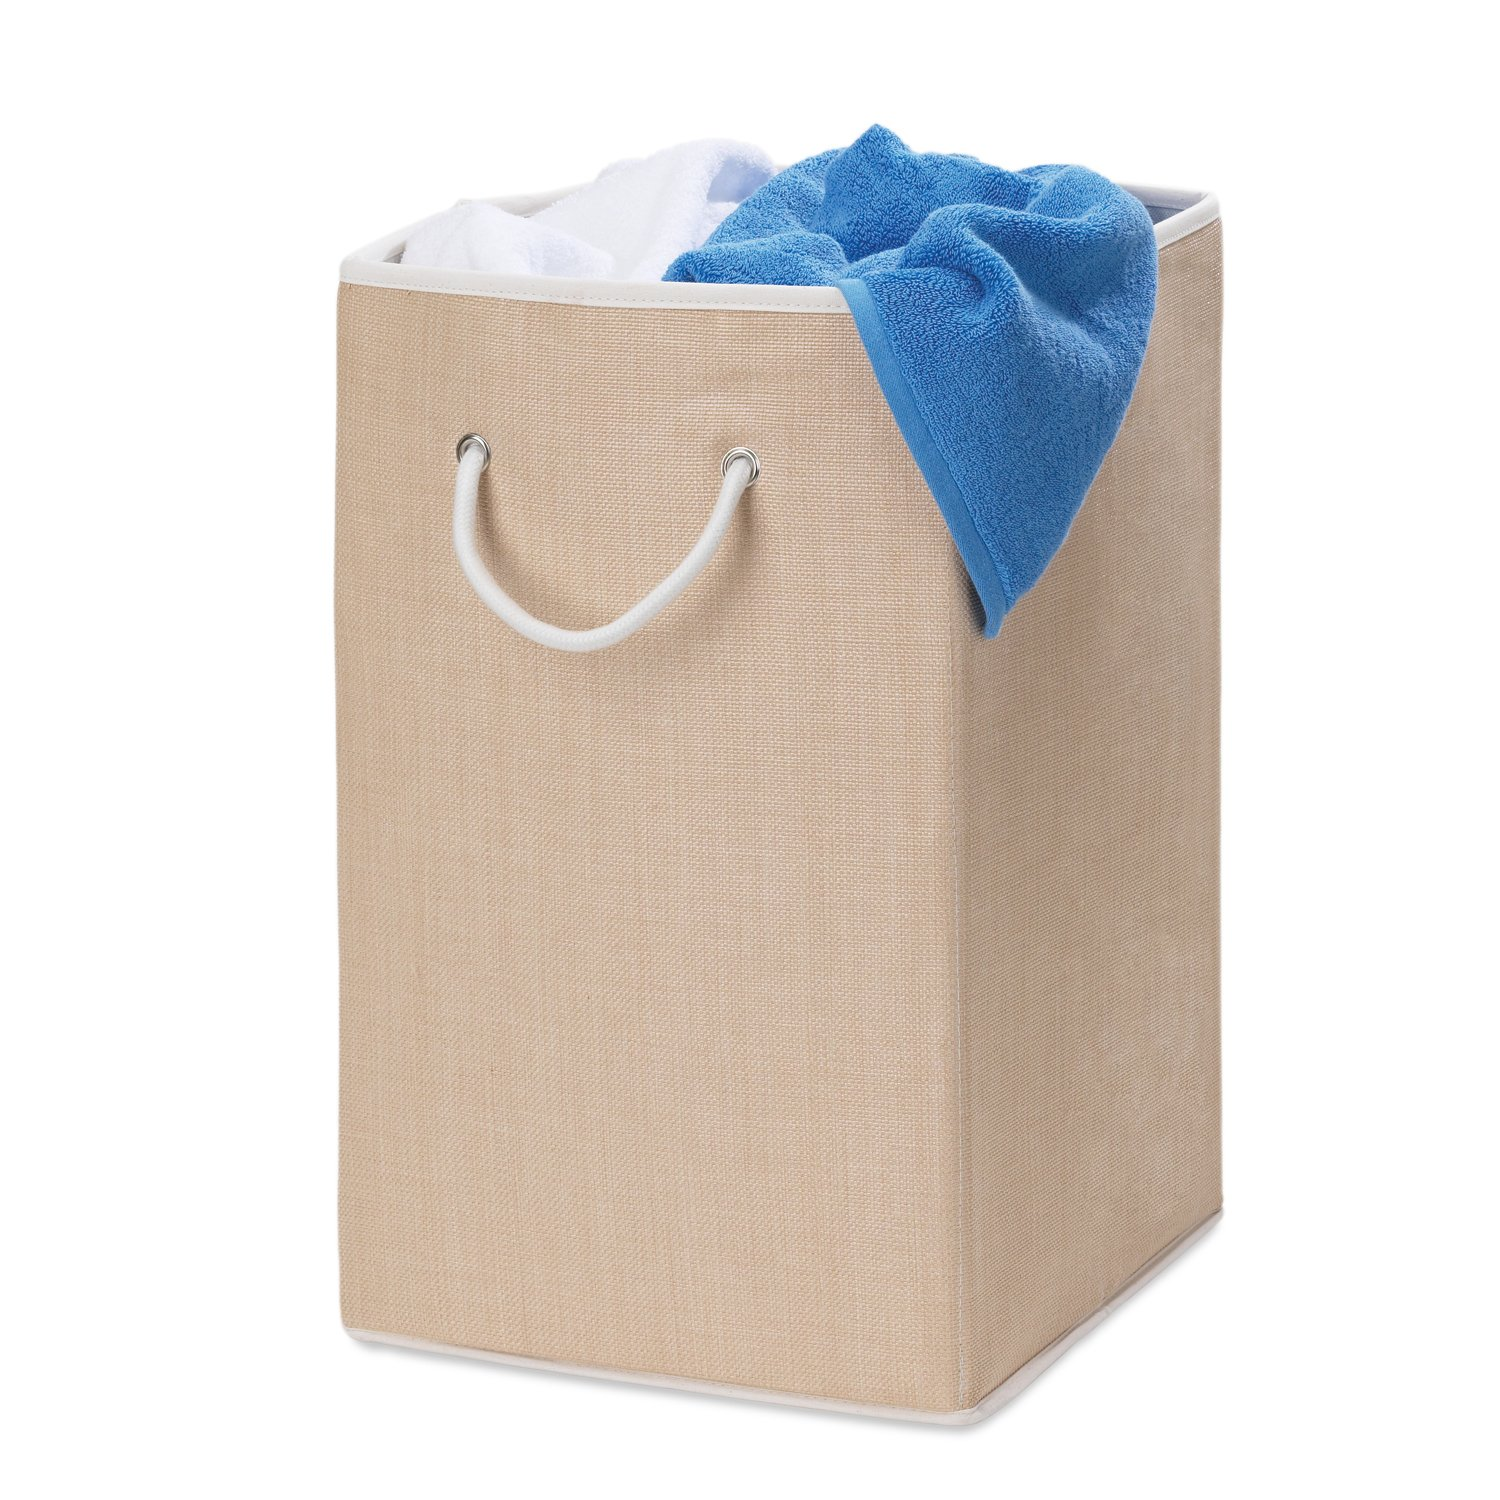 Top 10 Hampers Laundry Sorters Grace Brooke Llc